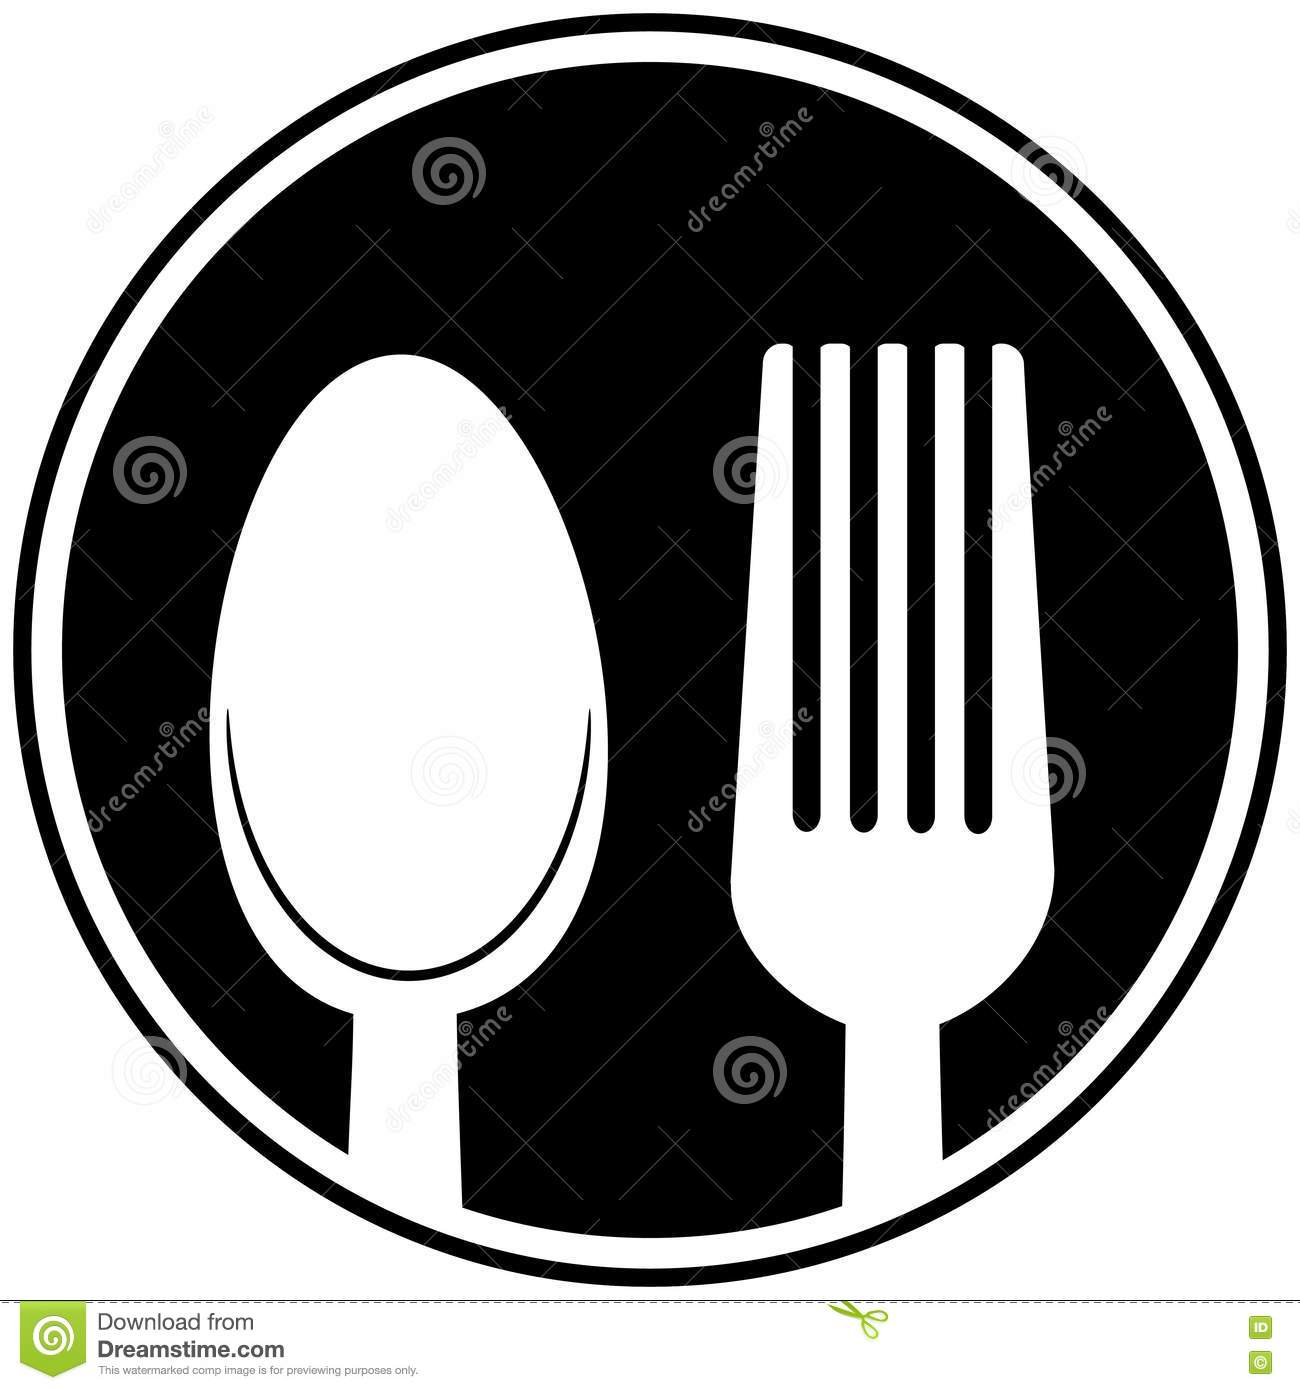 Spoon And Fork Symbol Stock Vector Illustration Of Spoon 72948891